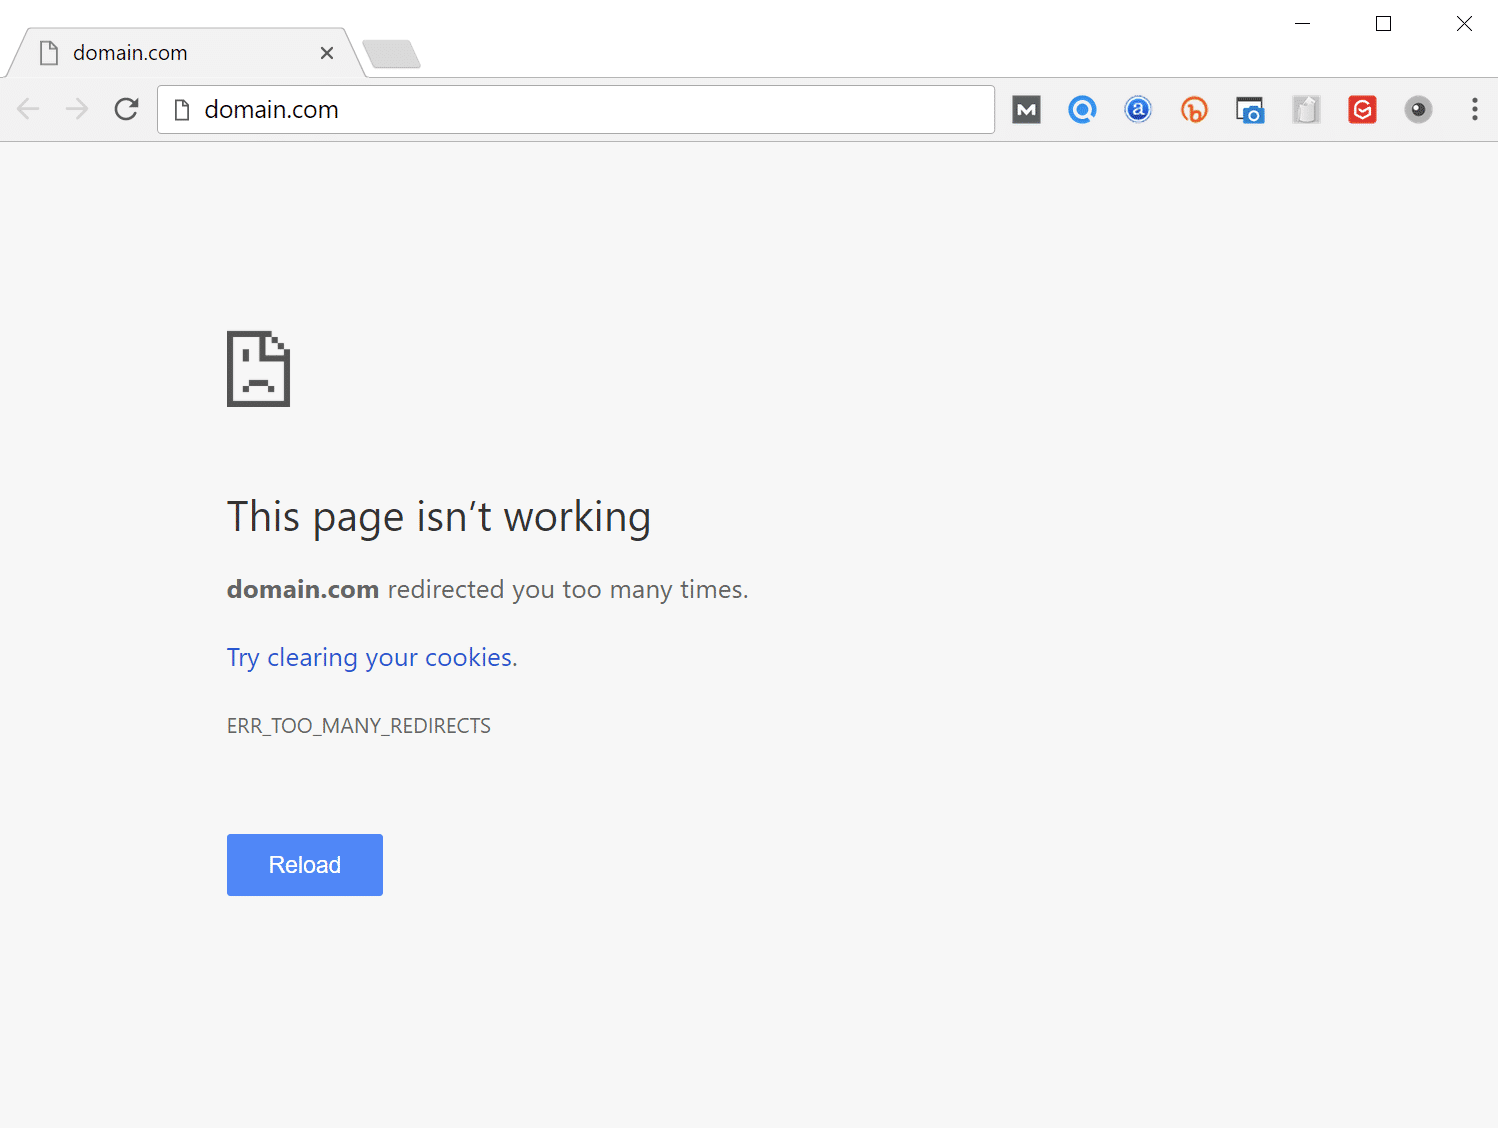 err_too_many_redirects fix android